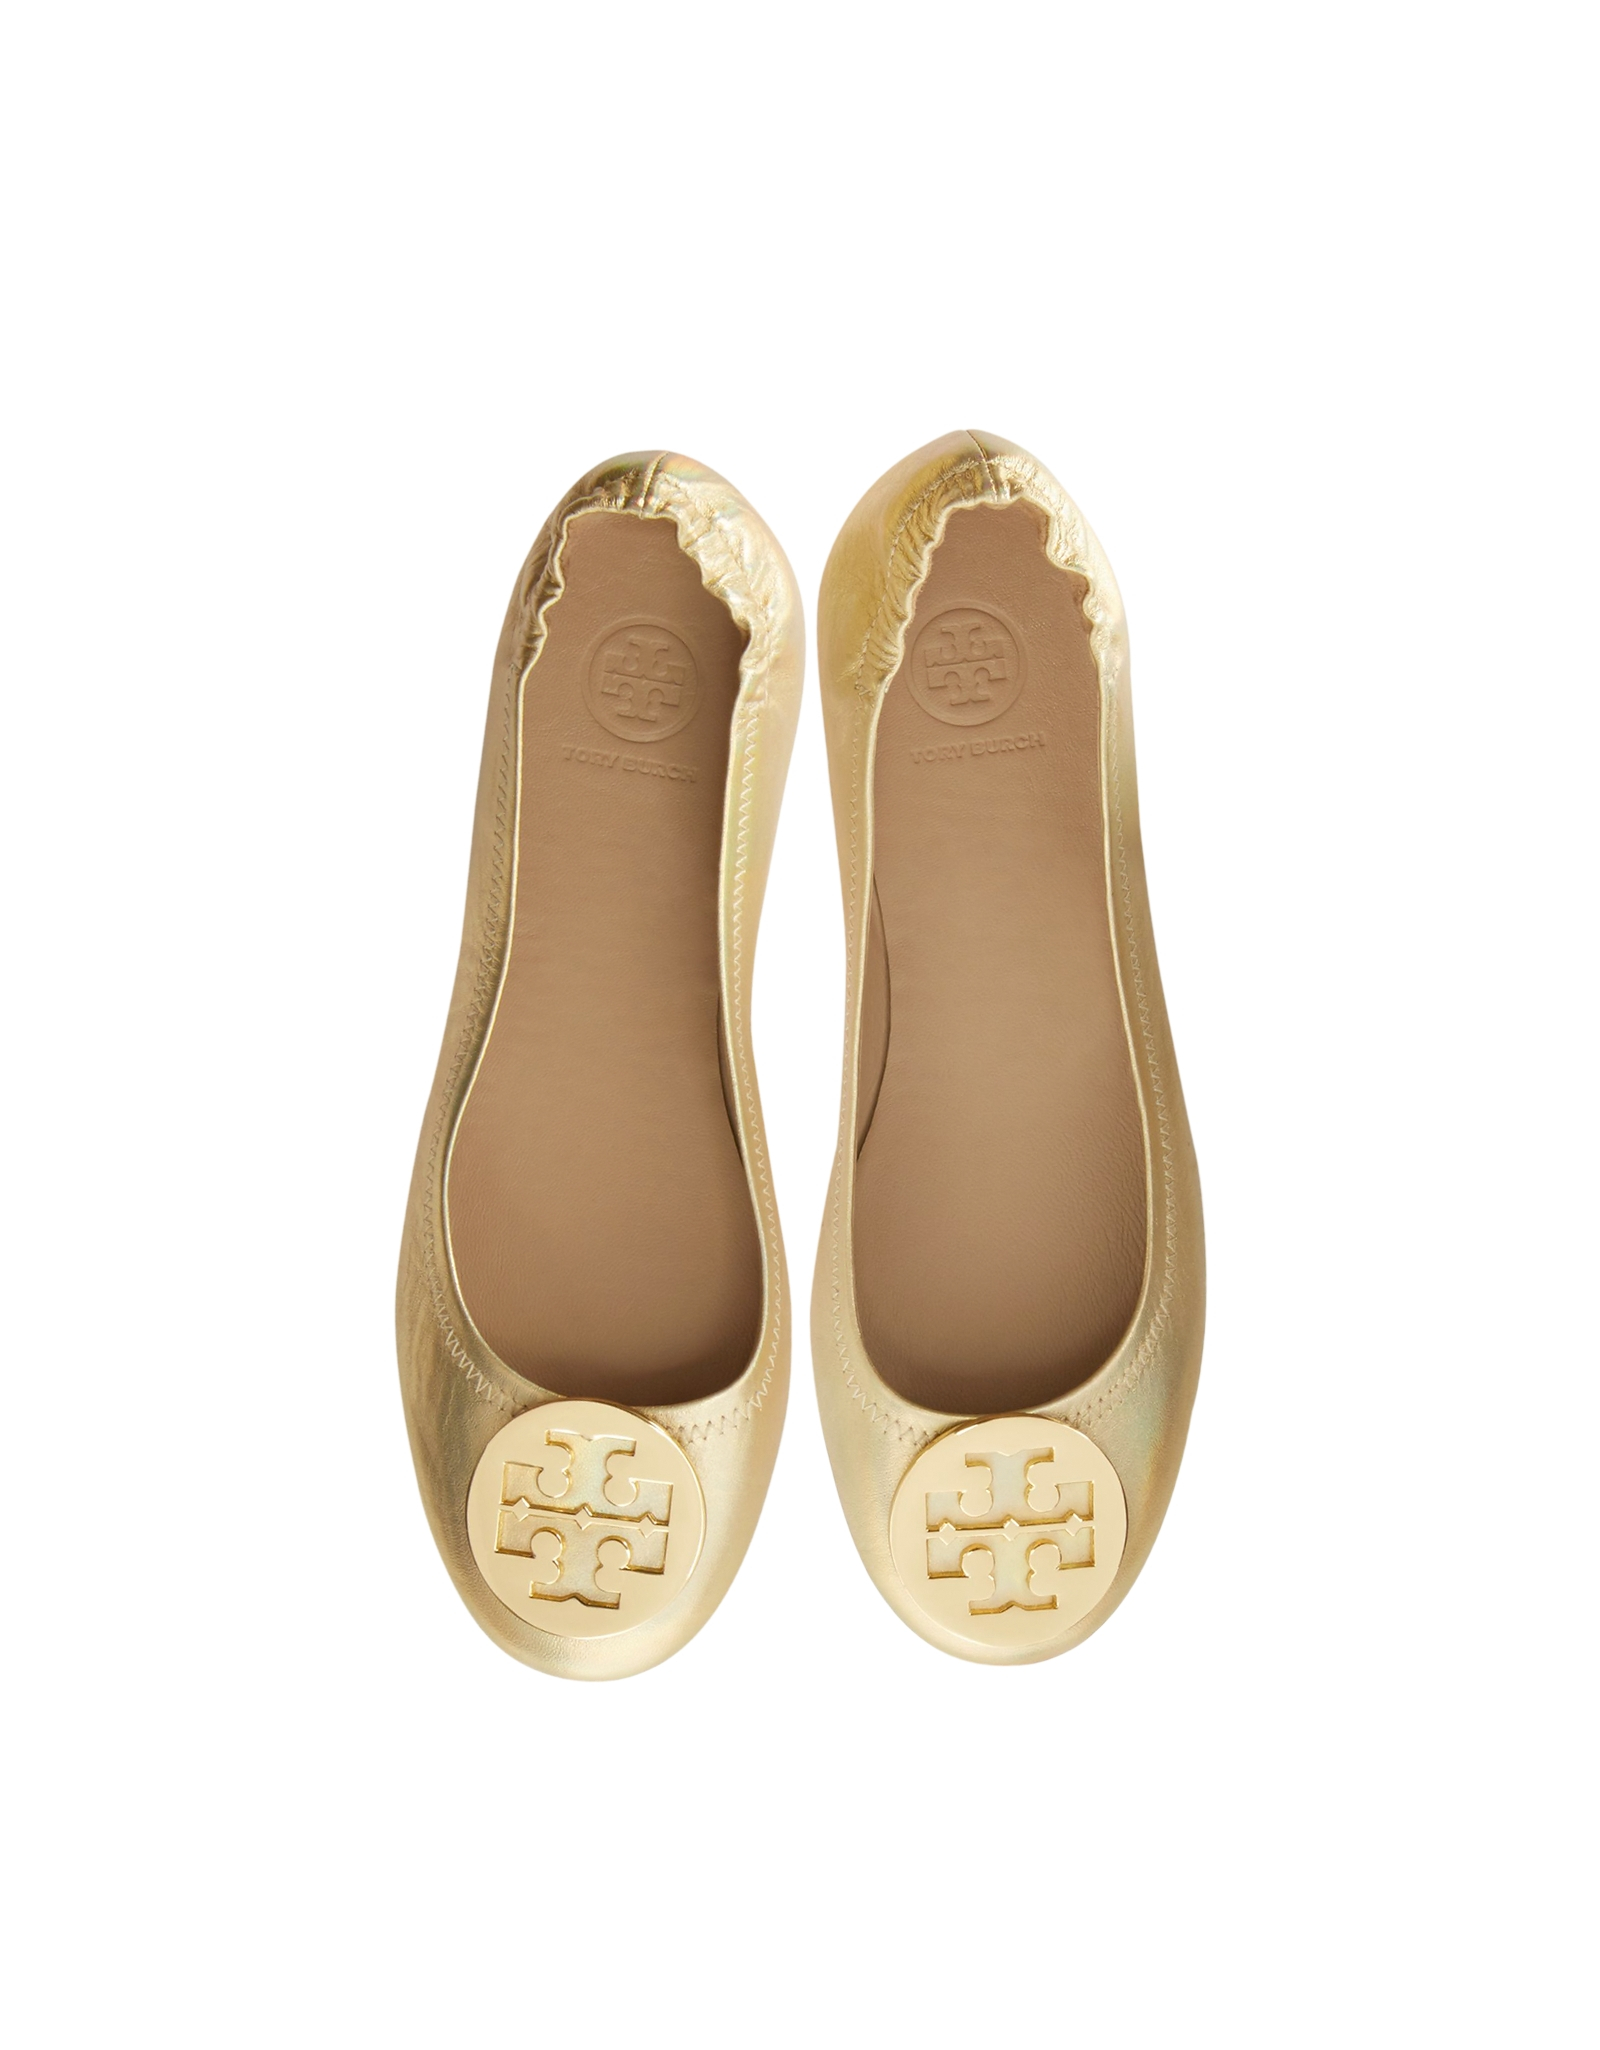 b7fba5d6c3d4 Lyst - Tory Burch Minnie Leather Travel Ballet Flats in Natural